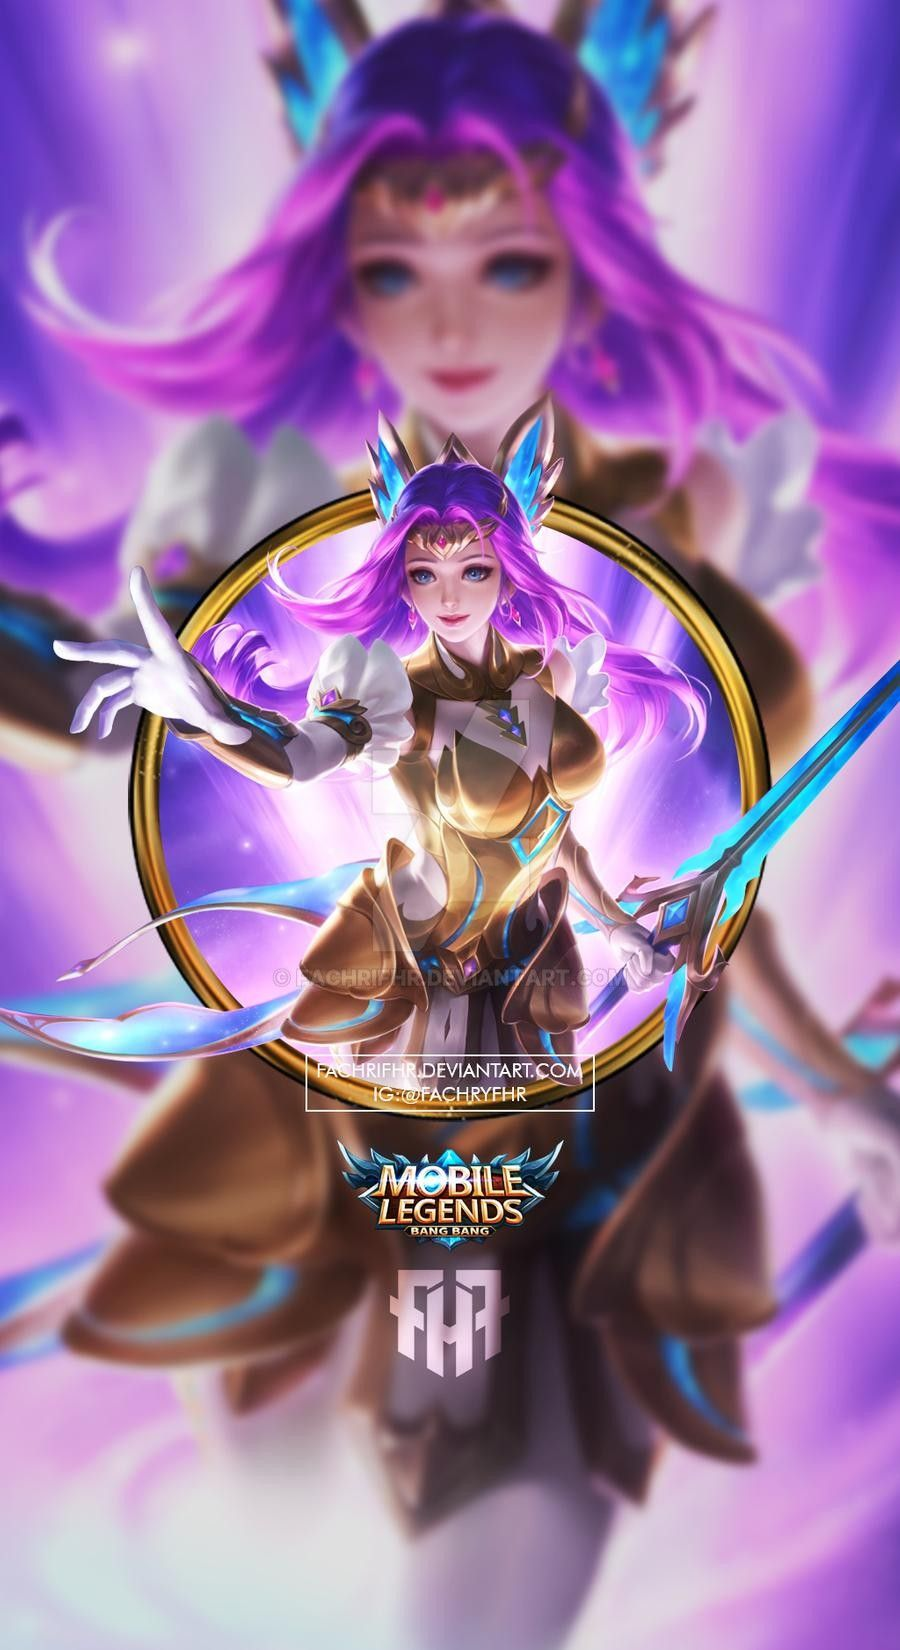 Wallpaper Phone Odette Zodiak Virgo By Fachrifhr On Deviantart Desain Karakter Game Animasi Gambar